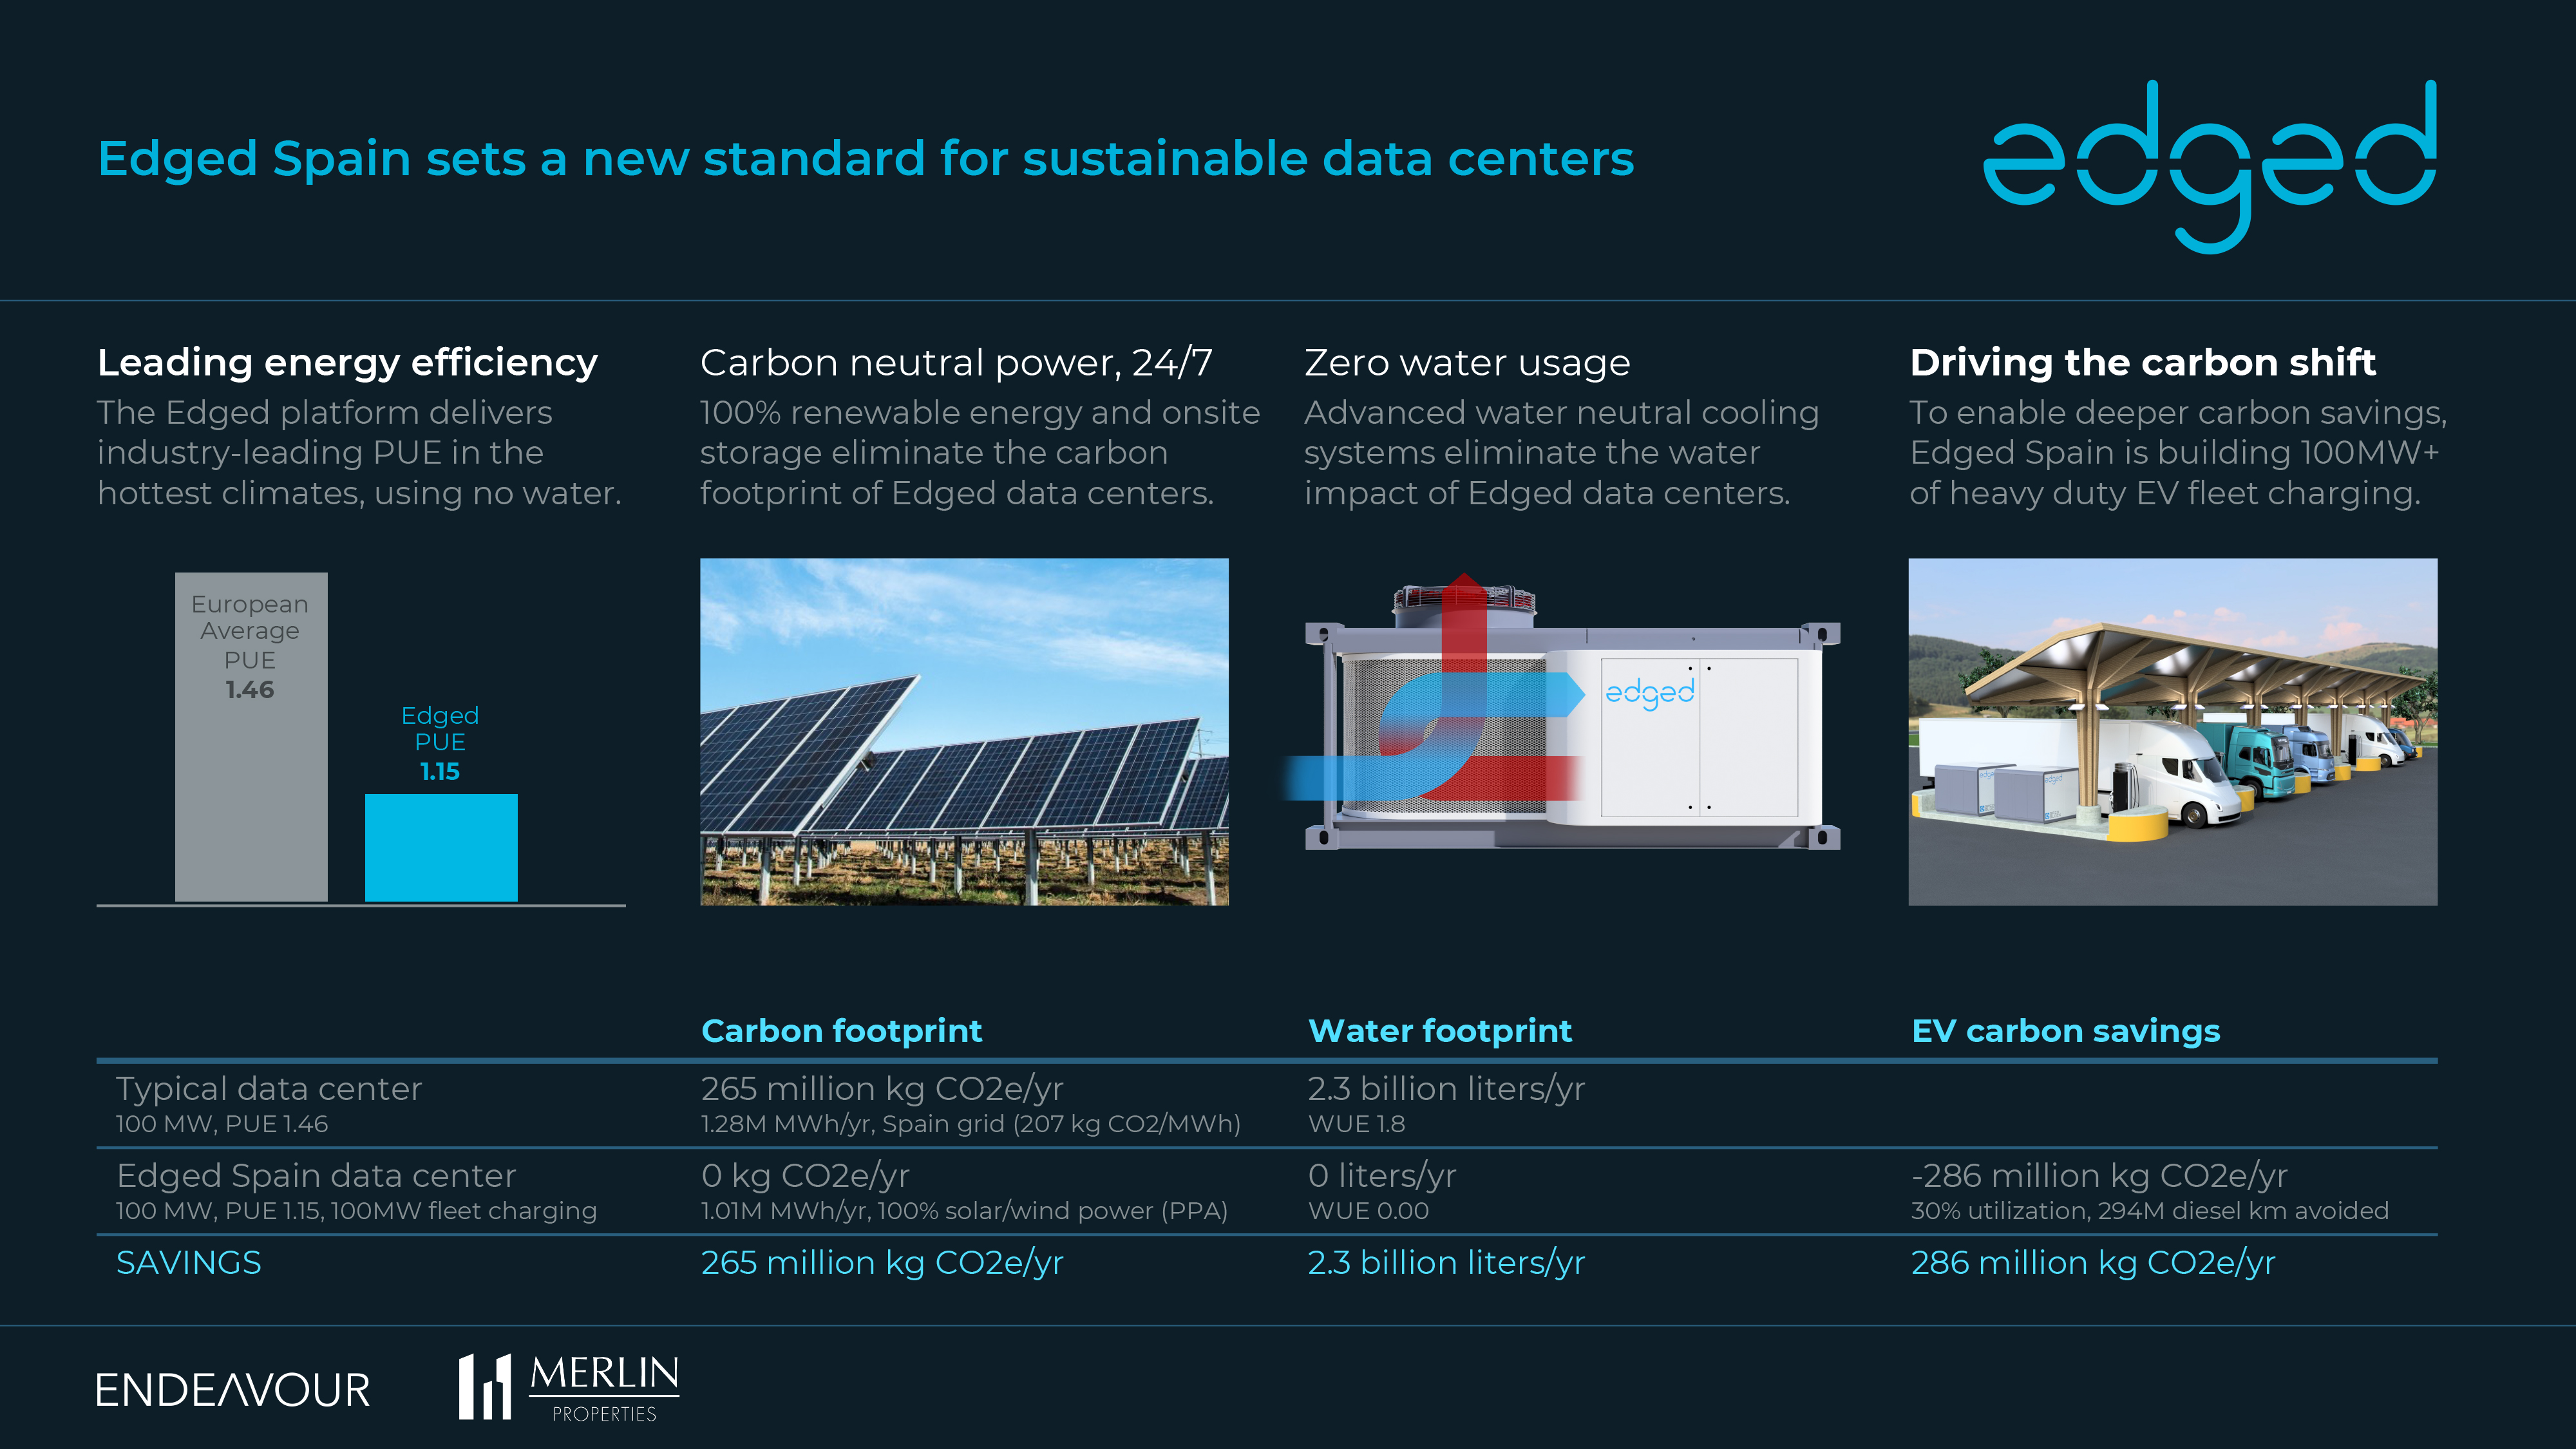 Edged Spain sets a new standard for sustainable data centers